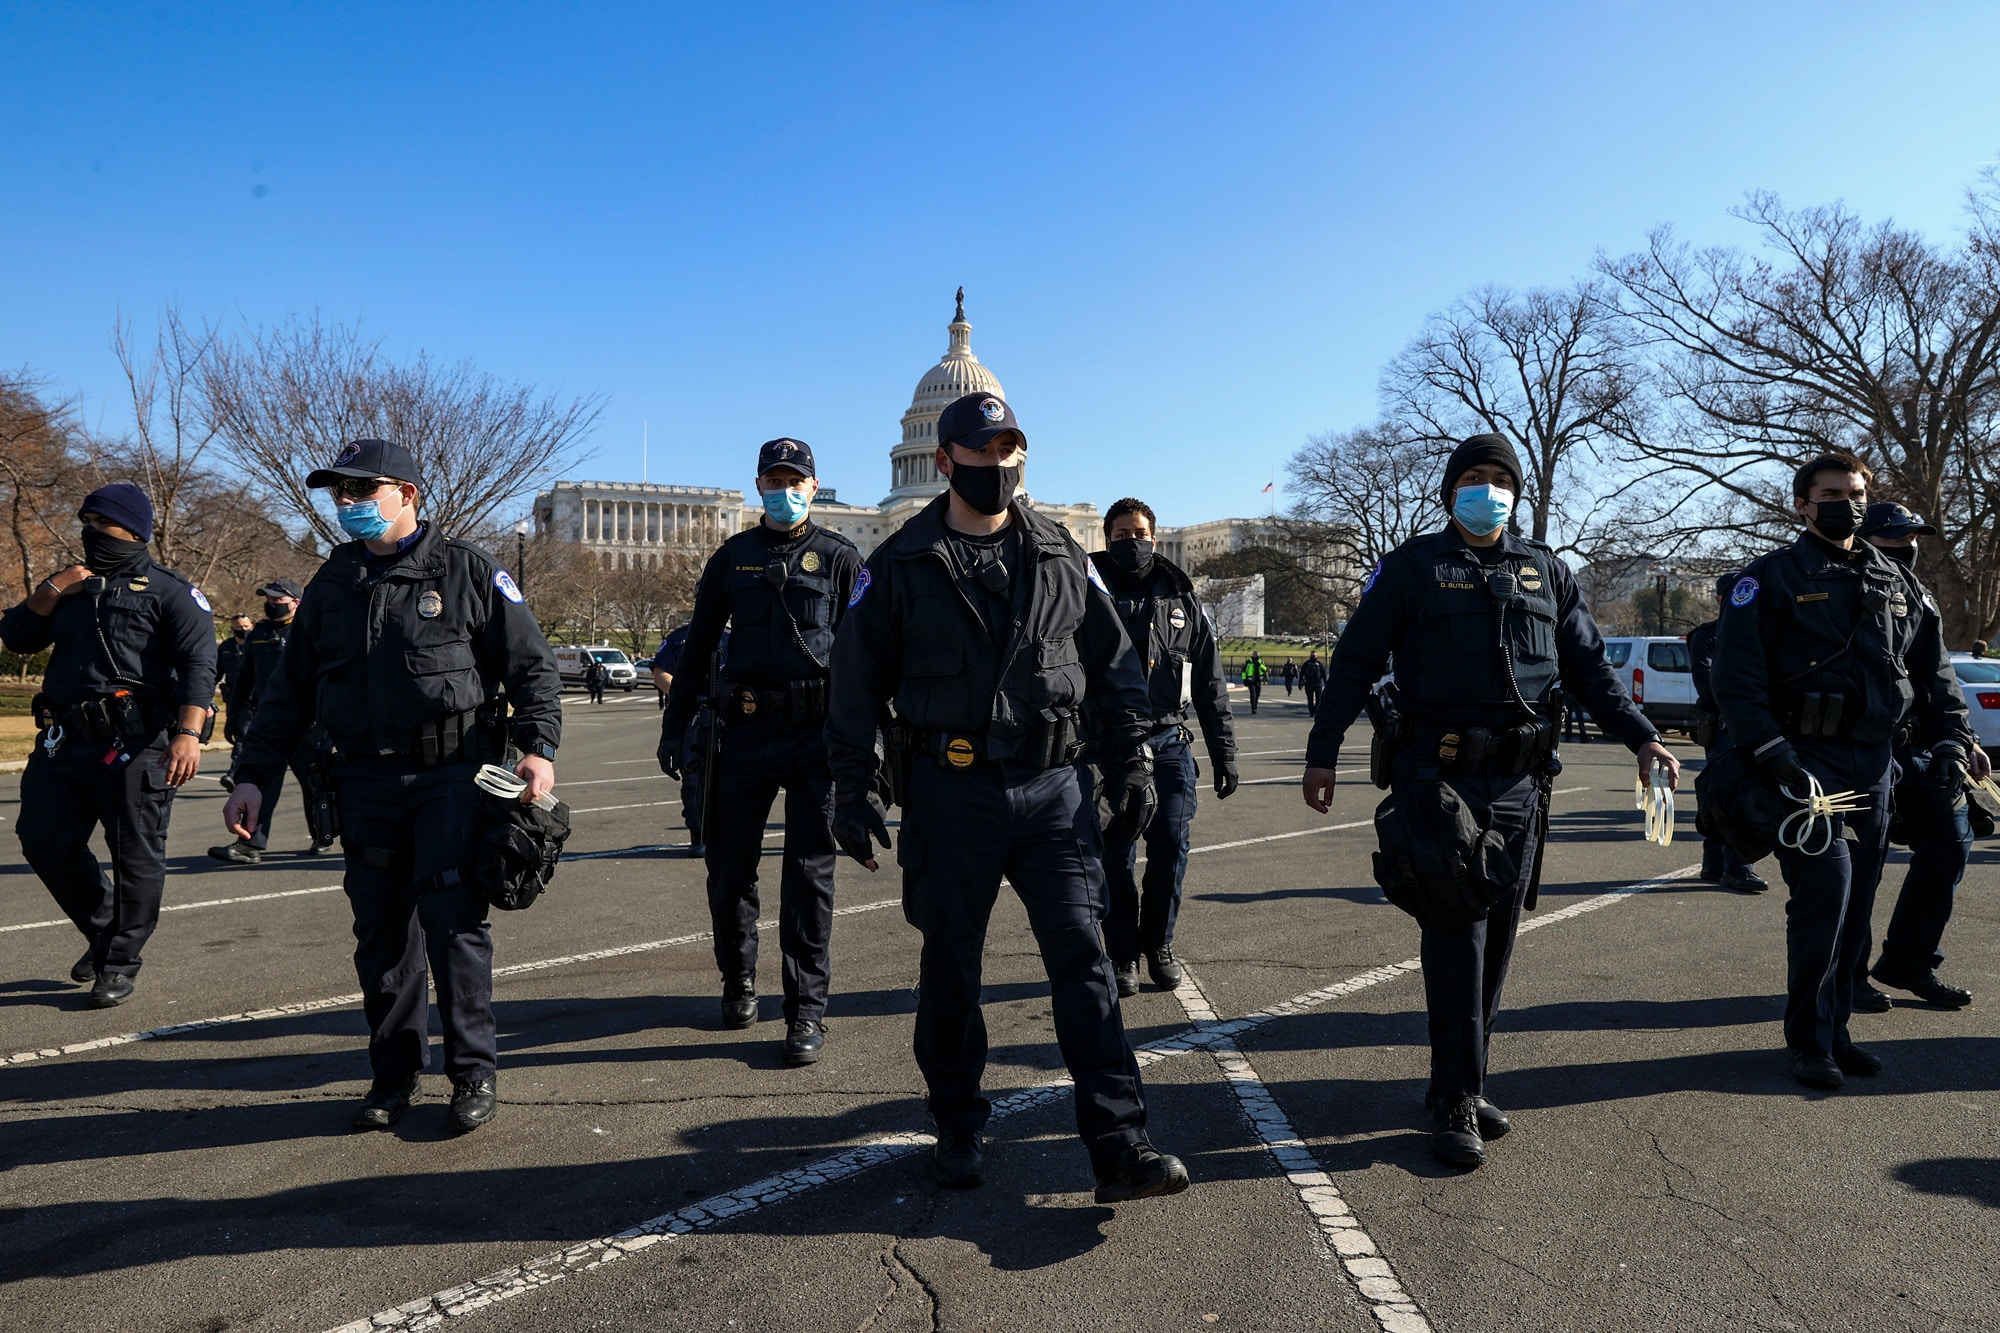 U.S. Capitol Police prepare to make arrests as anti-Trump protesters gather on the West Front of the U.S. Capitol on January 13, 2021 in Washington, DC.